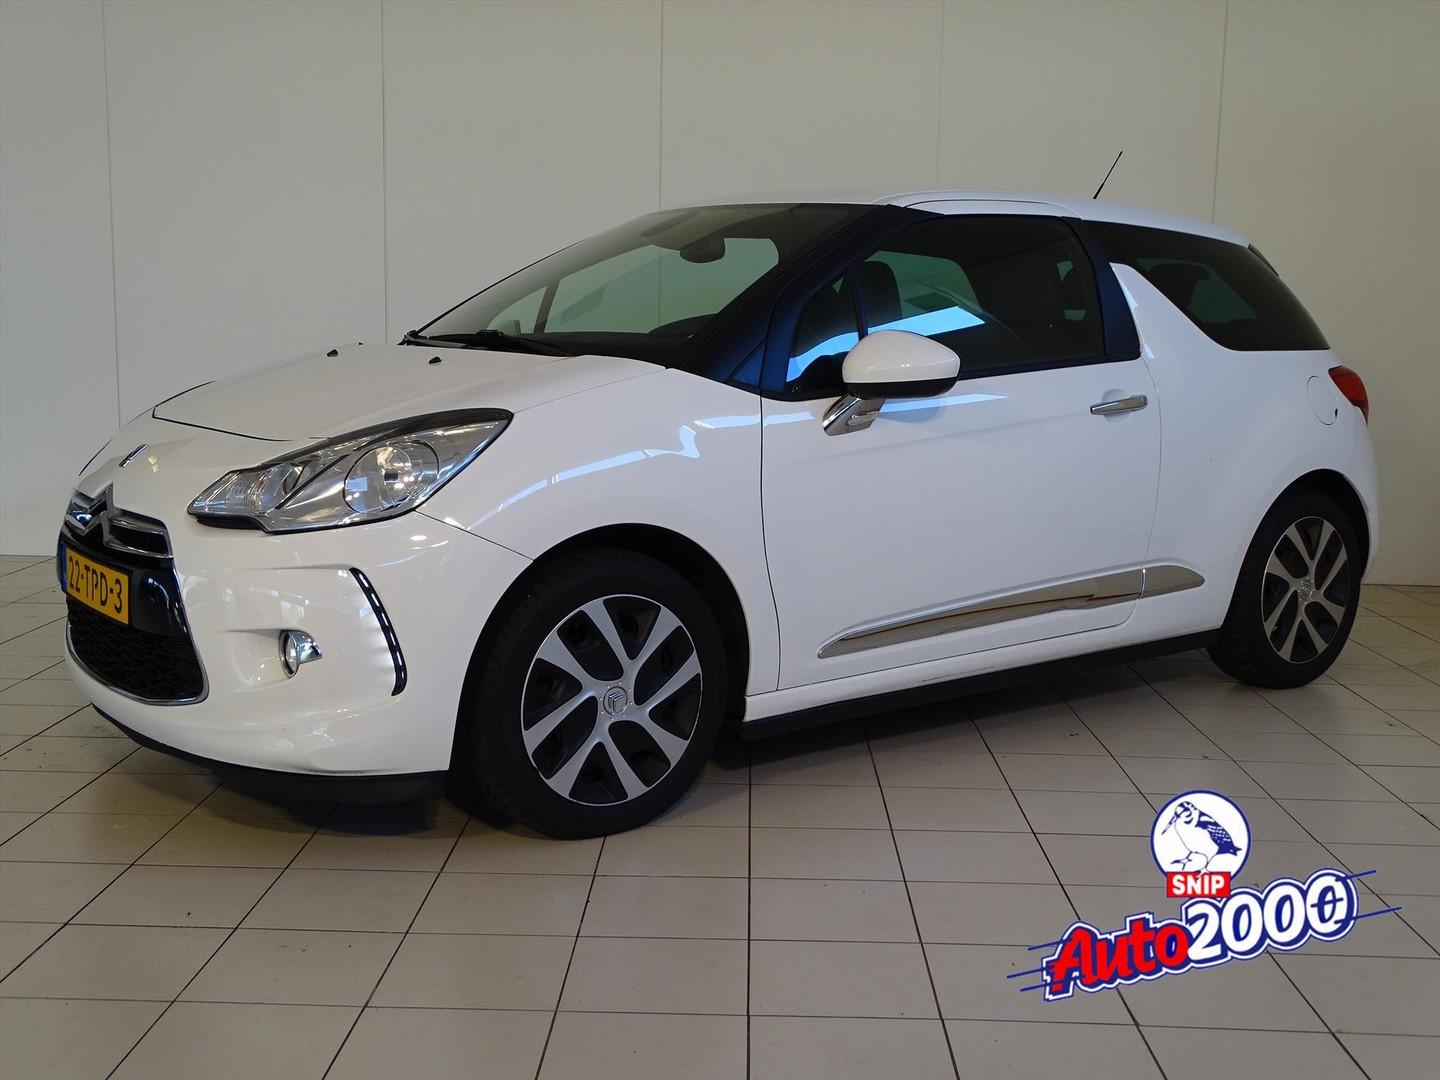 Citroën Ds3 1.6 e-hdi airdream 92pk 91g so chic nav.